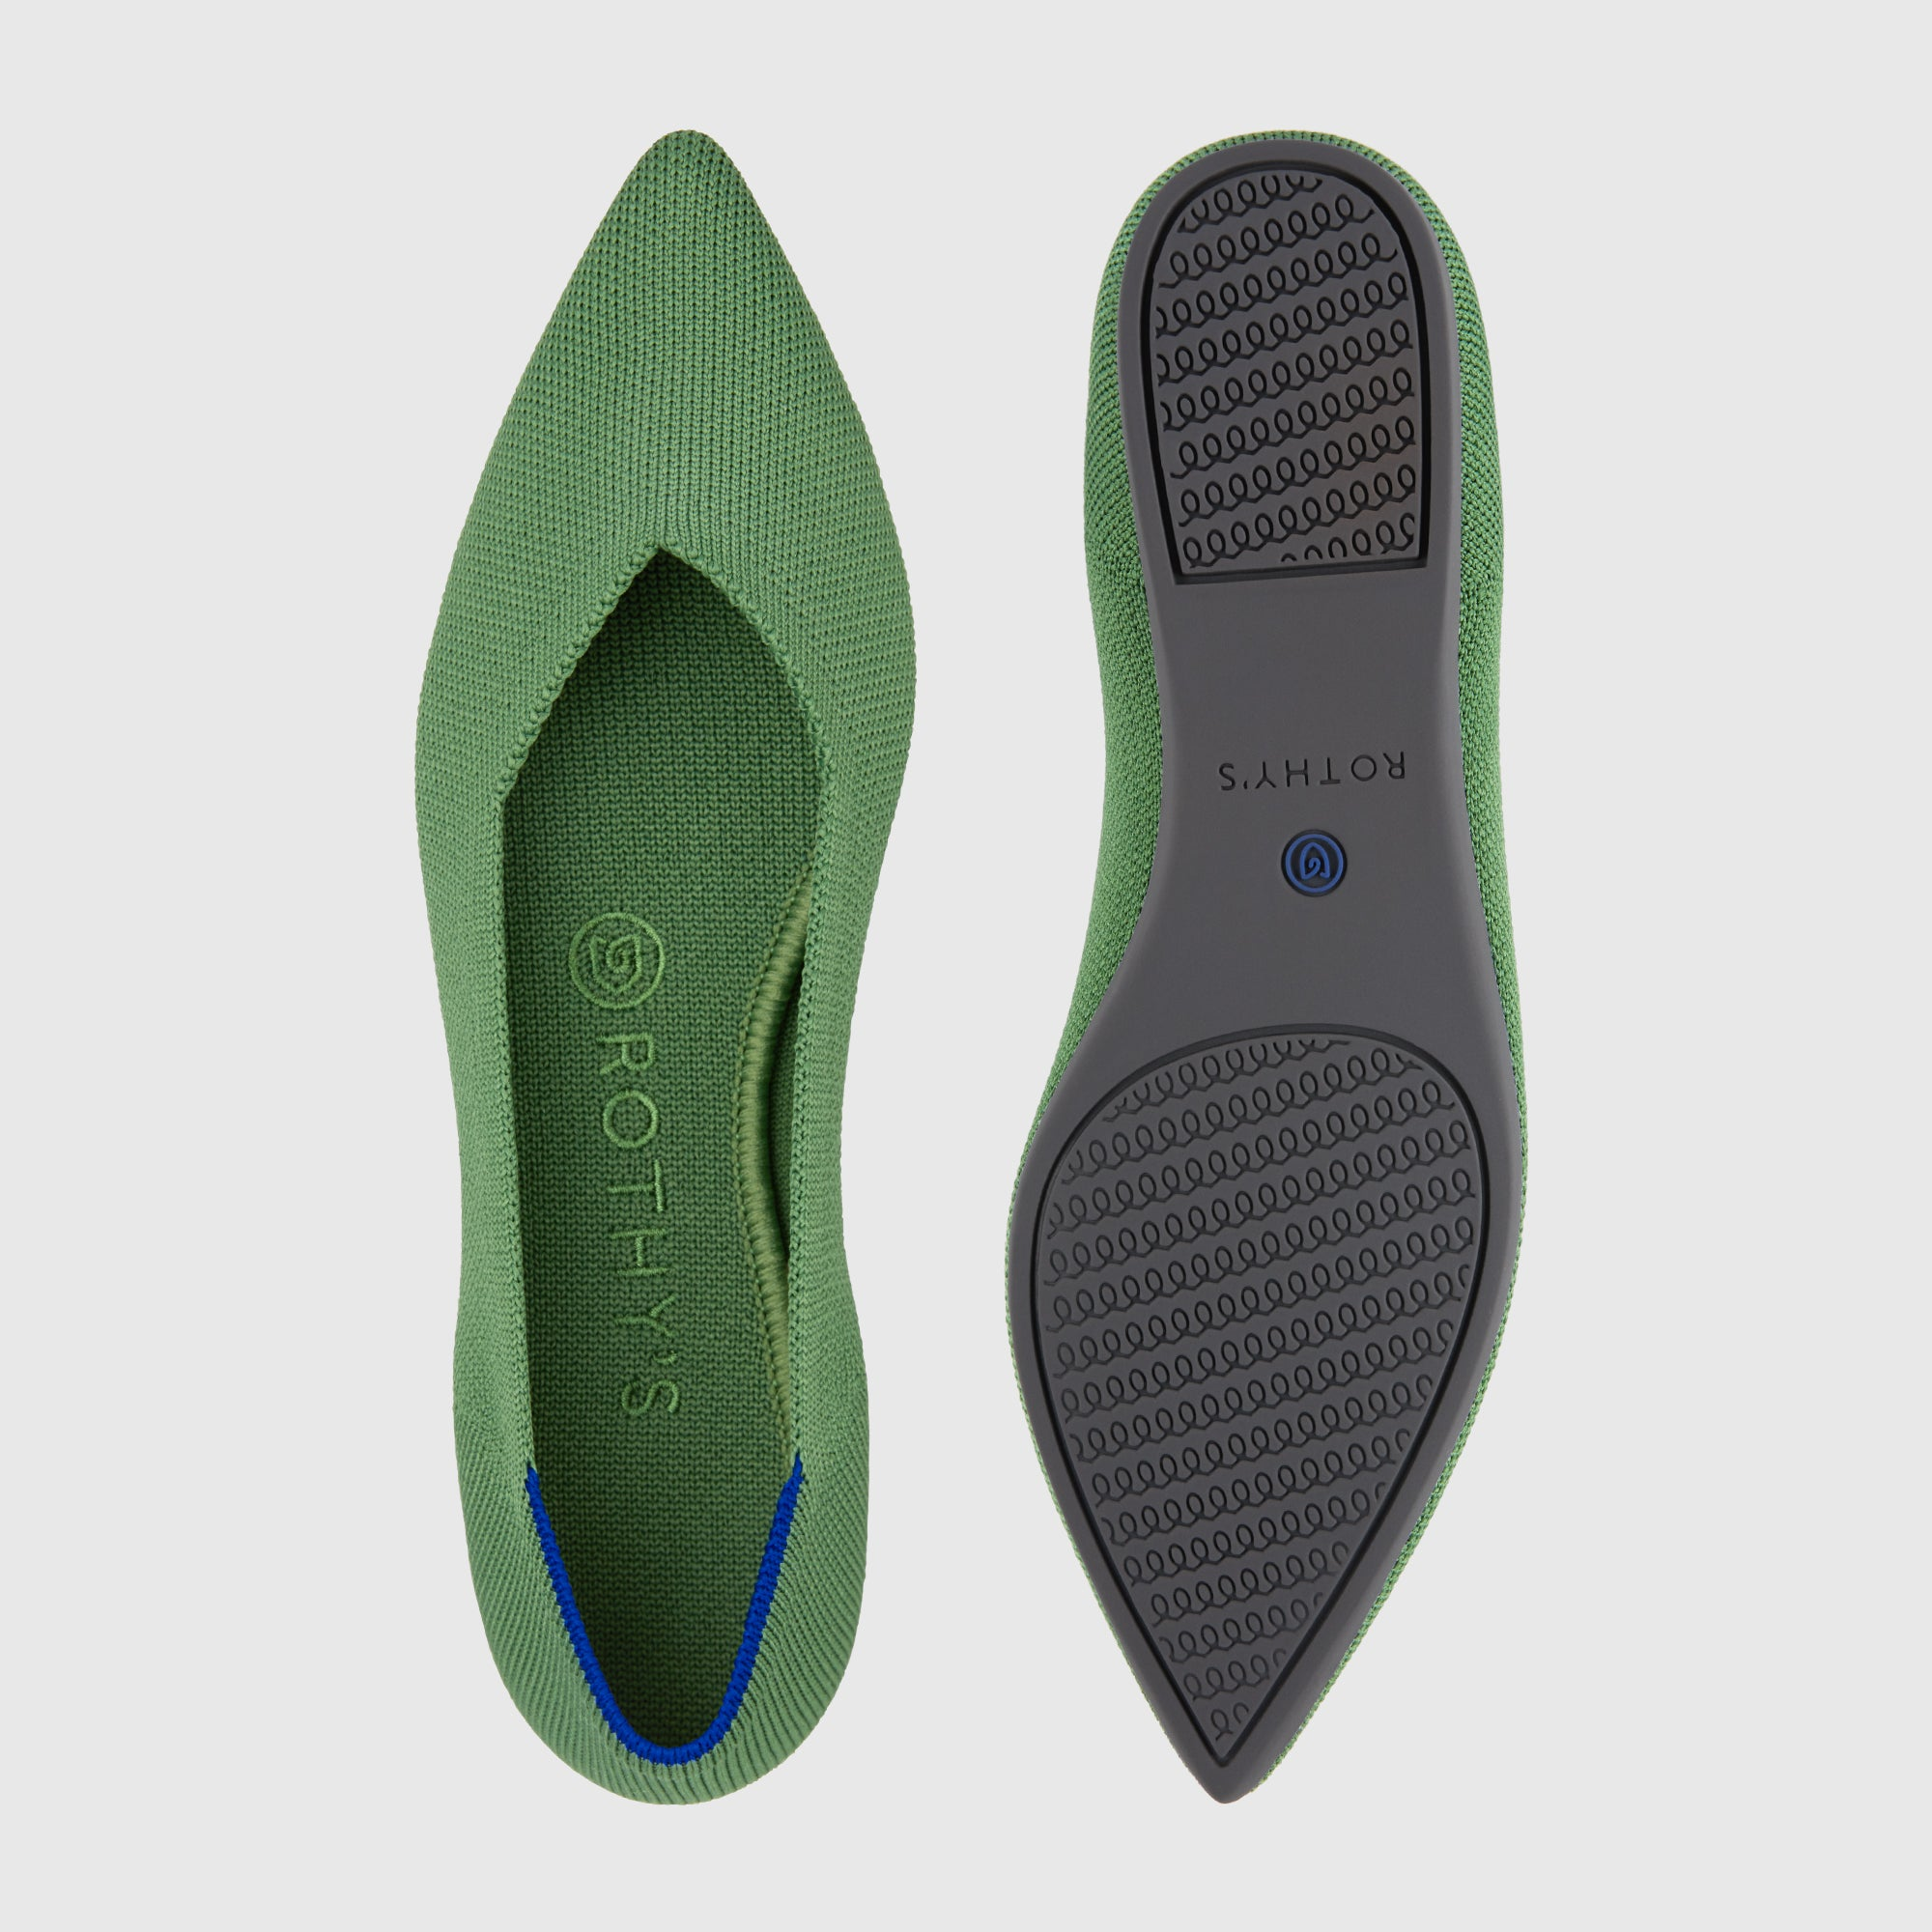 The Point shoe in Willow shown from the top alongside a view of the sole.